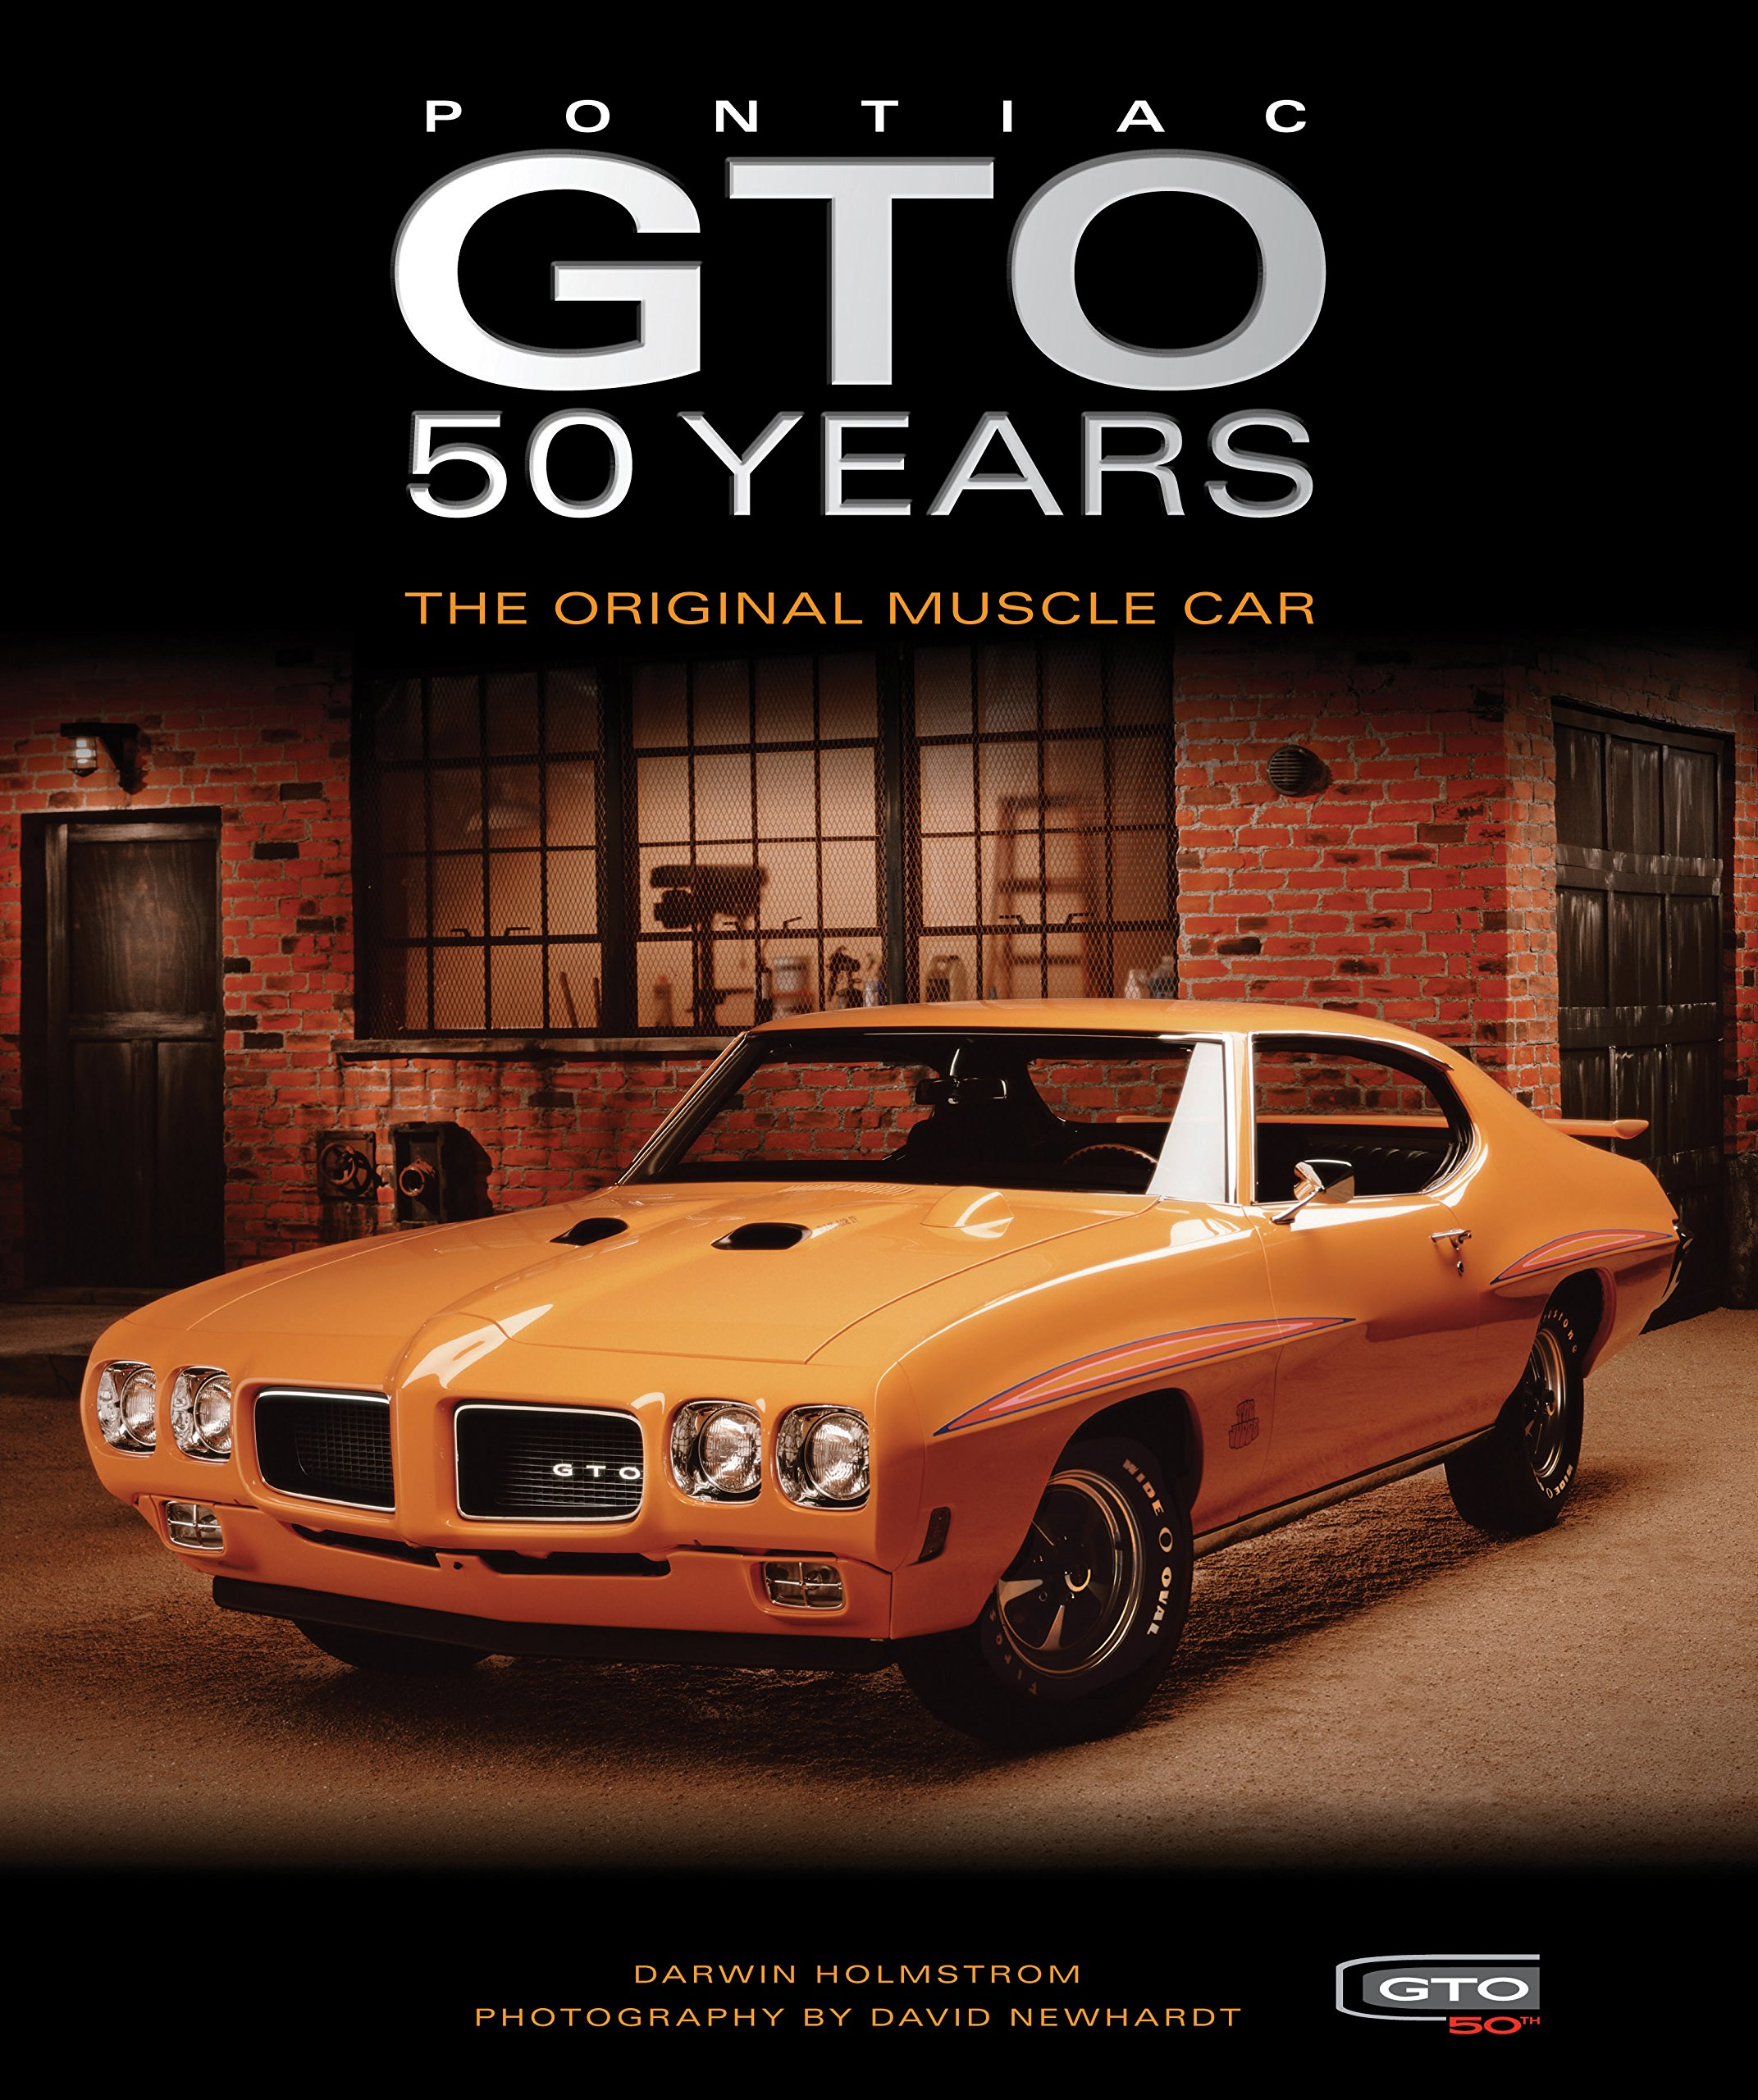 Superb Pontiac GTO 50 Years: The Original Muscle Car: Darwin Holmstrom, David  Newhardt: 0752748347113: Amazon.com: Books